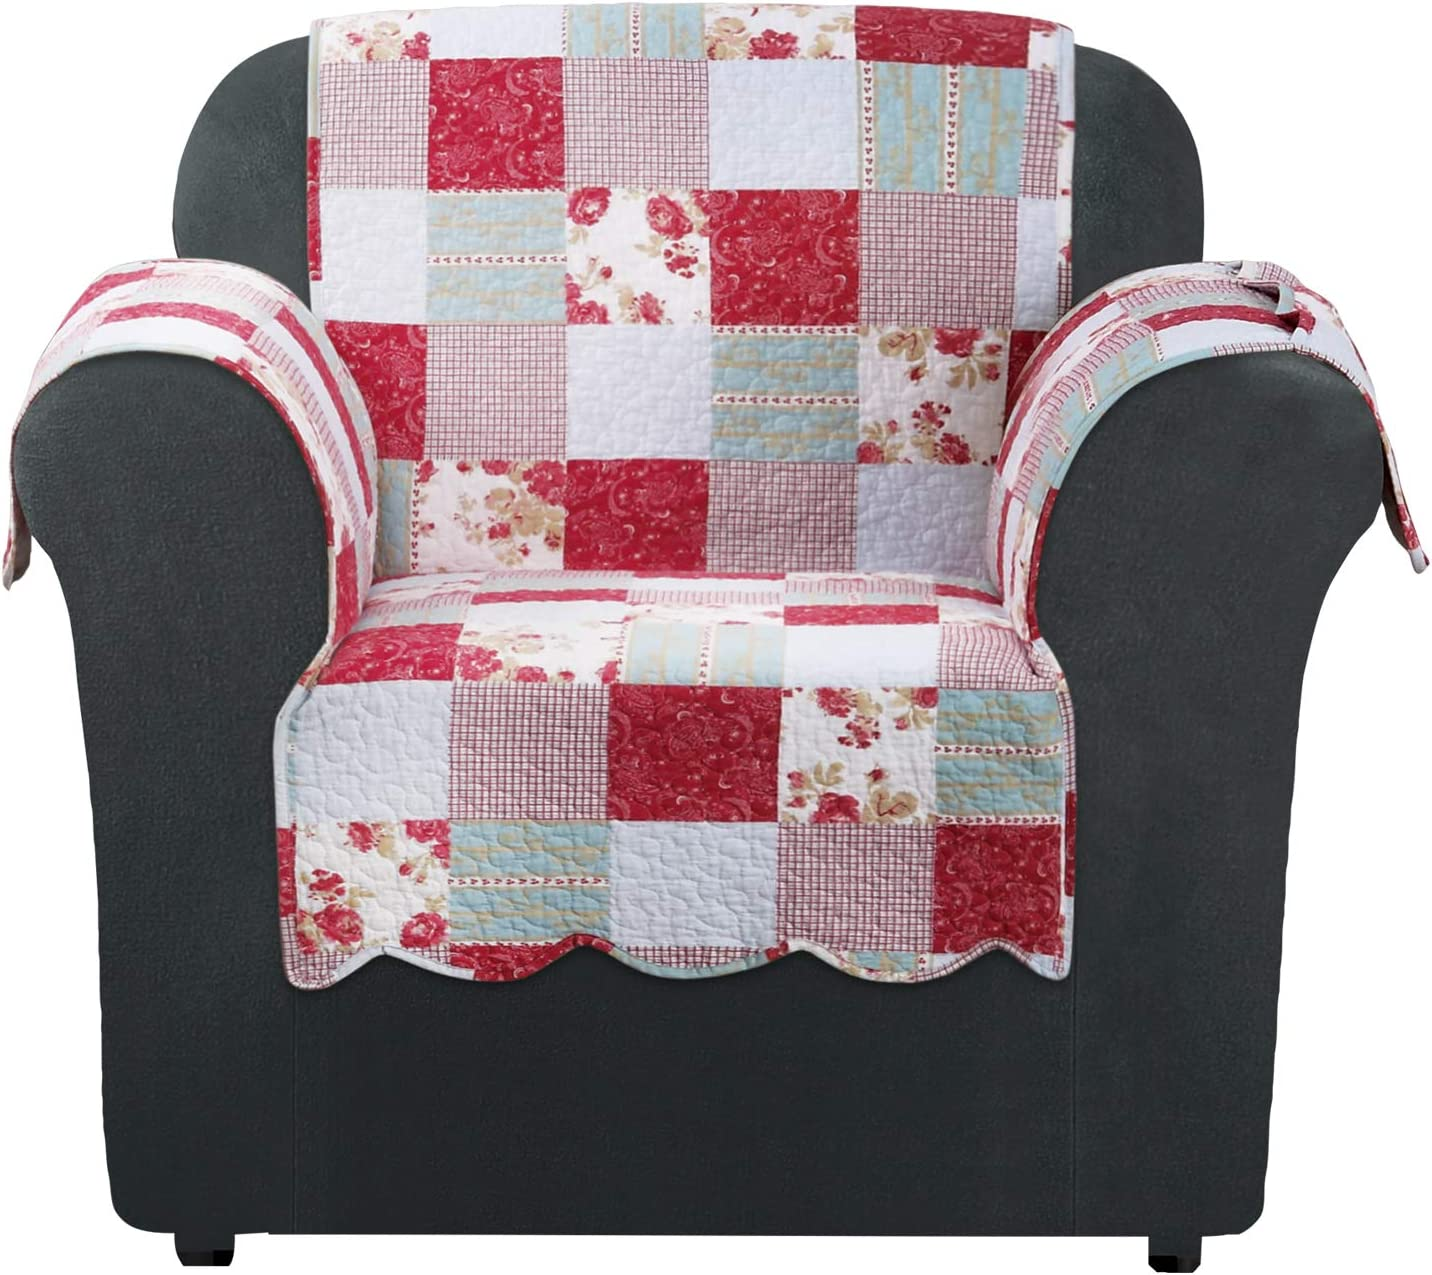 SureFit Heirloom Quilted Pet Chair One Piece Furniture Throw Cover, Relaxed Fit, Cotton, Machine Washable, Cottage Patchwork Color